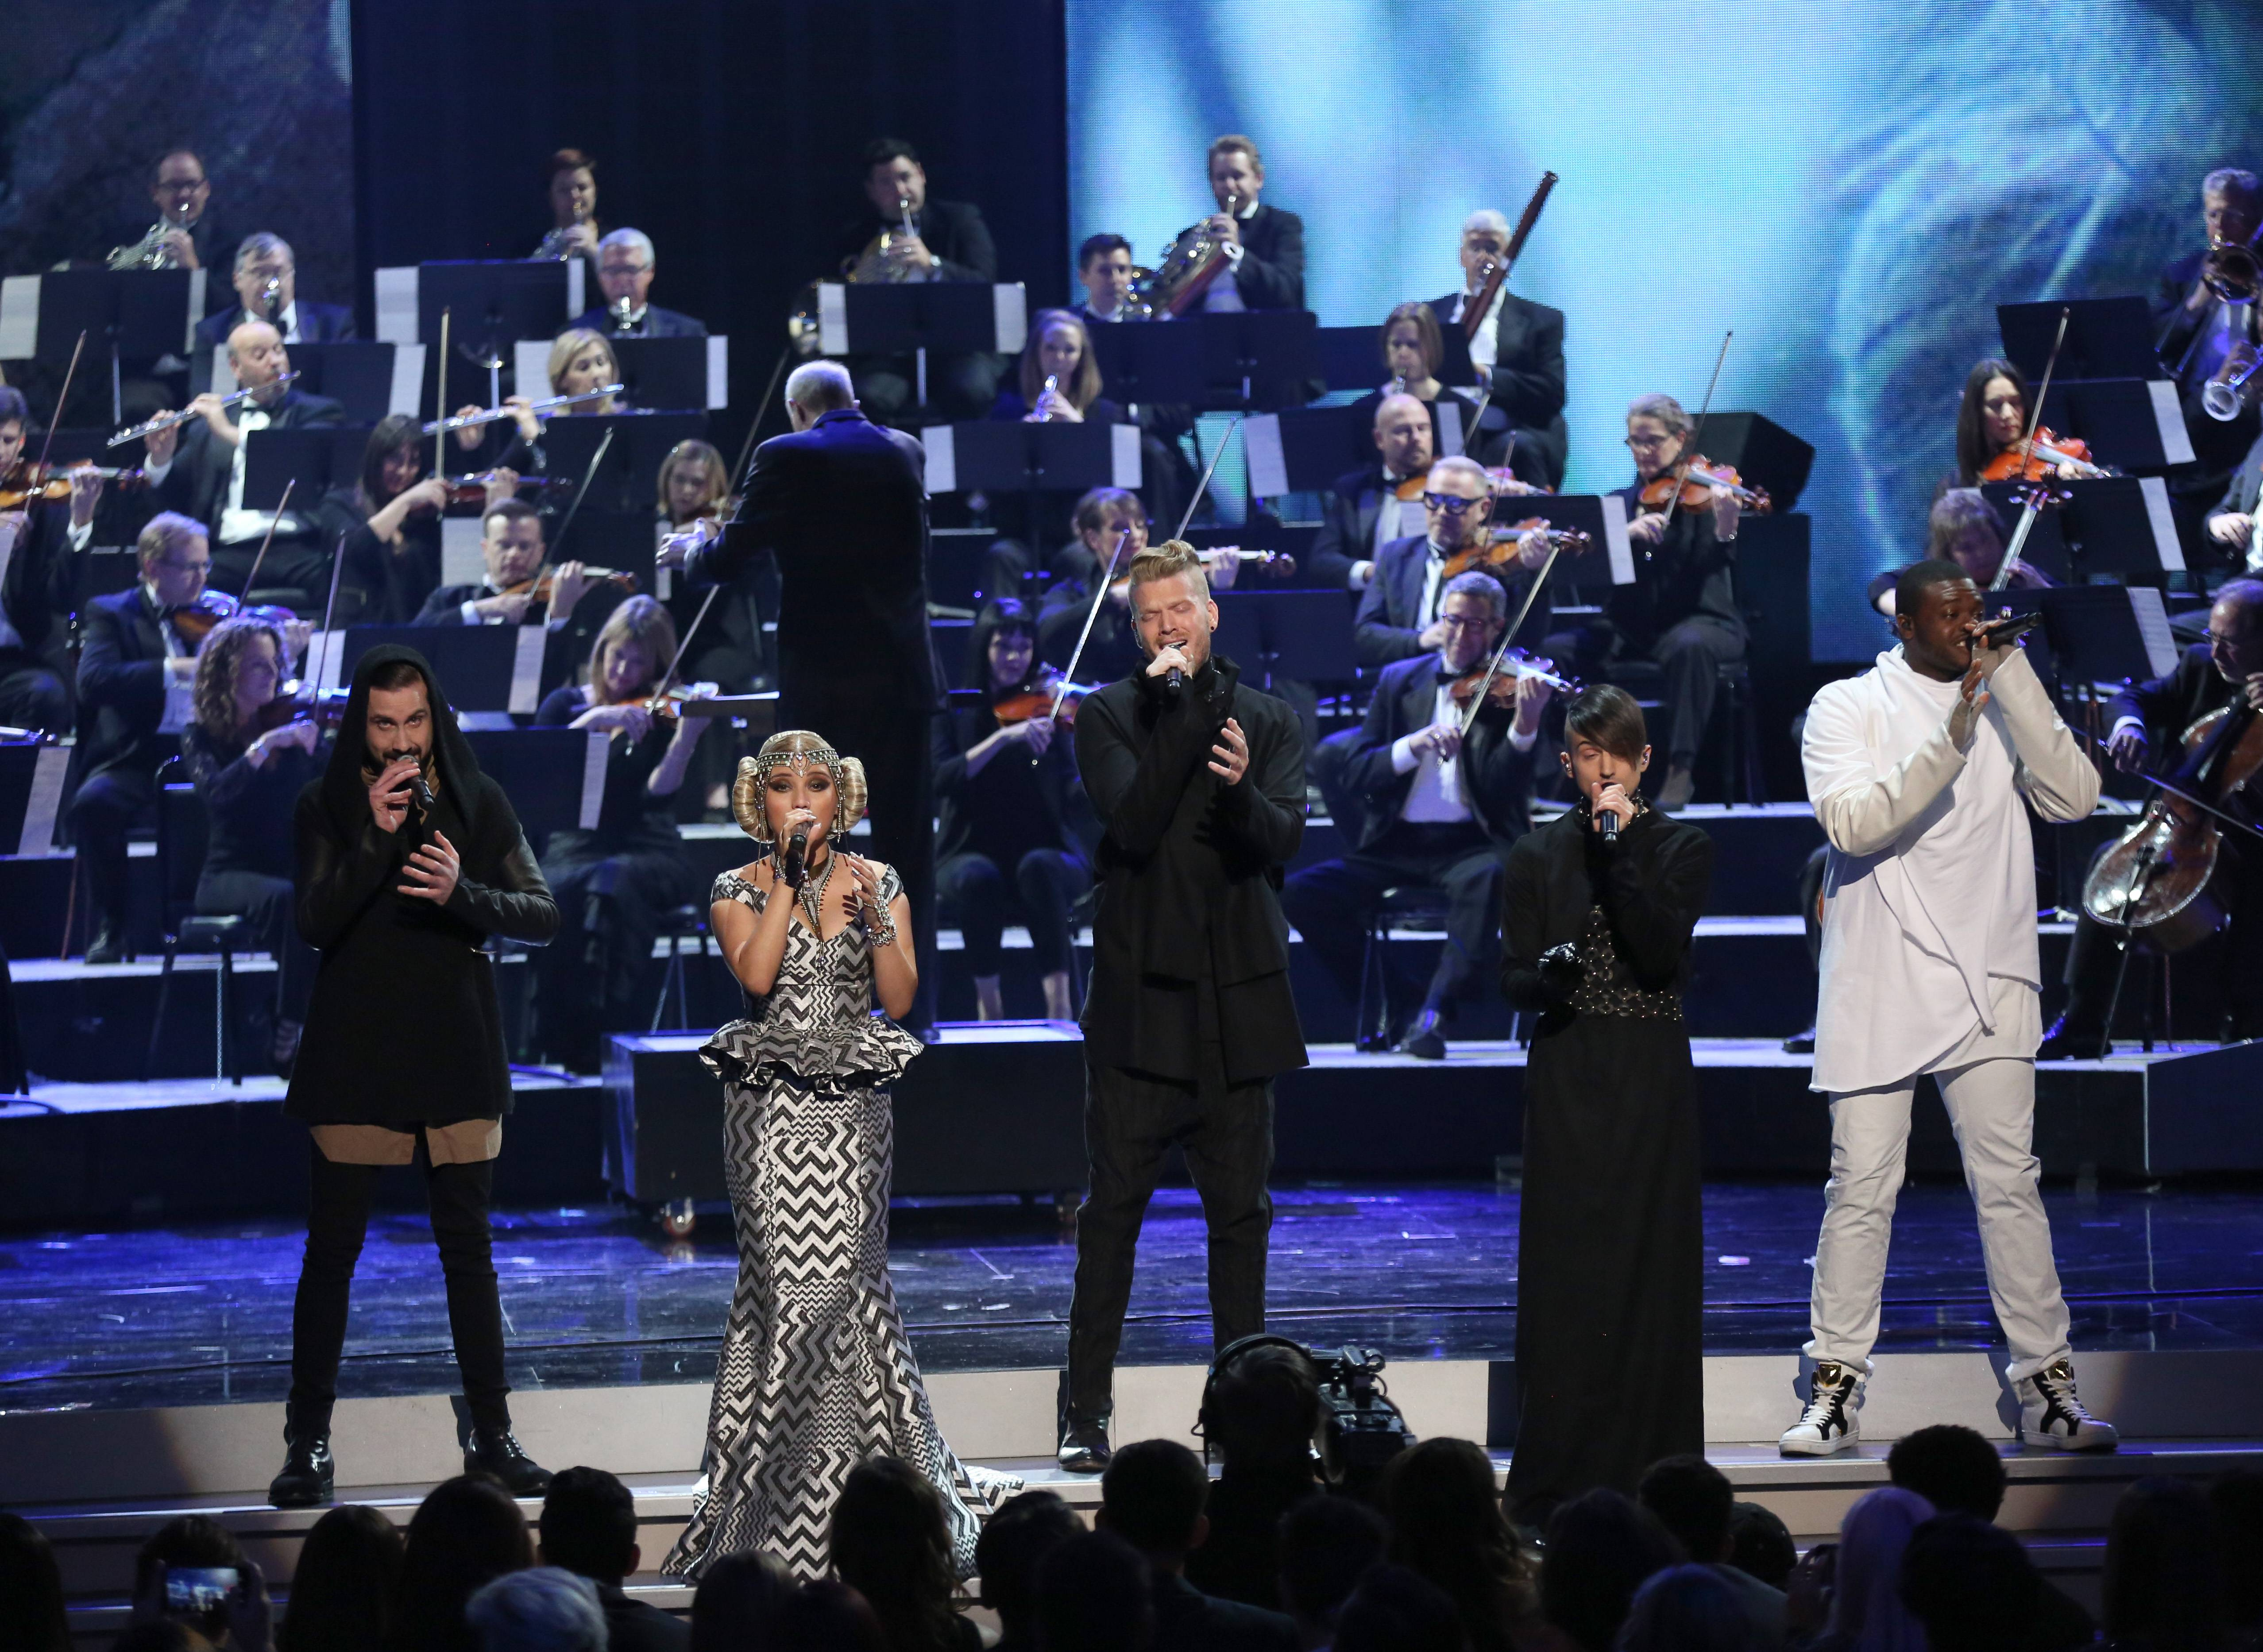 Pentatonix getting airplay, touring to Allstate